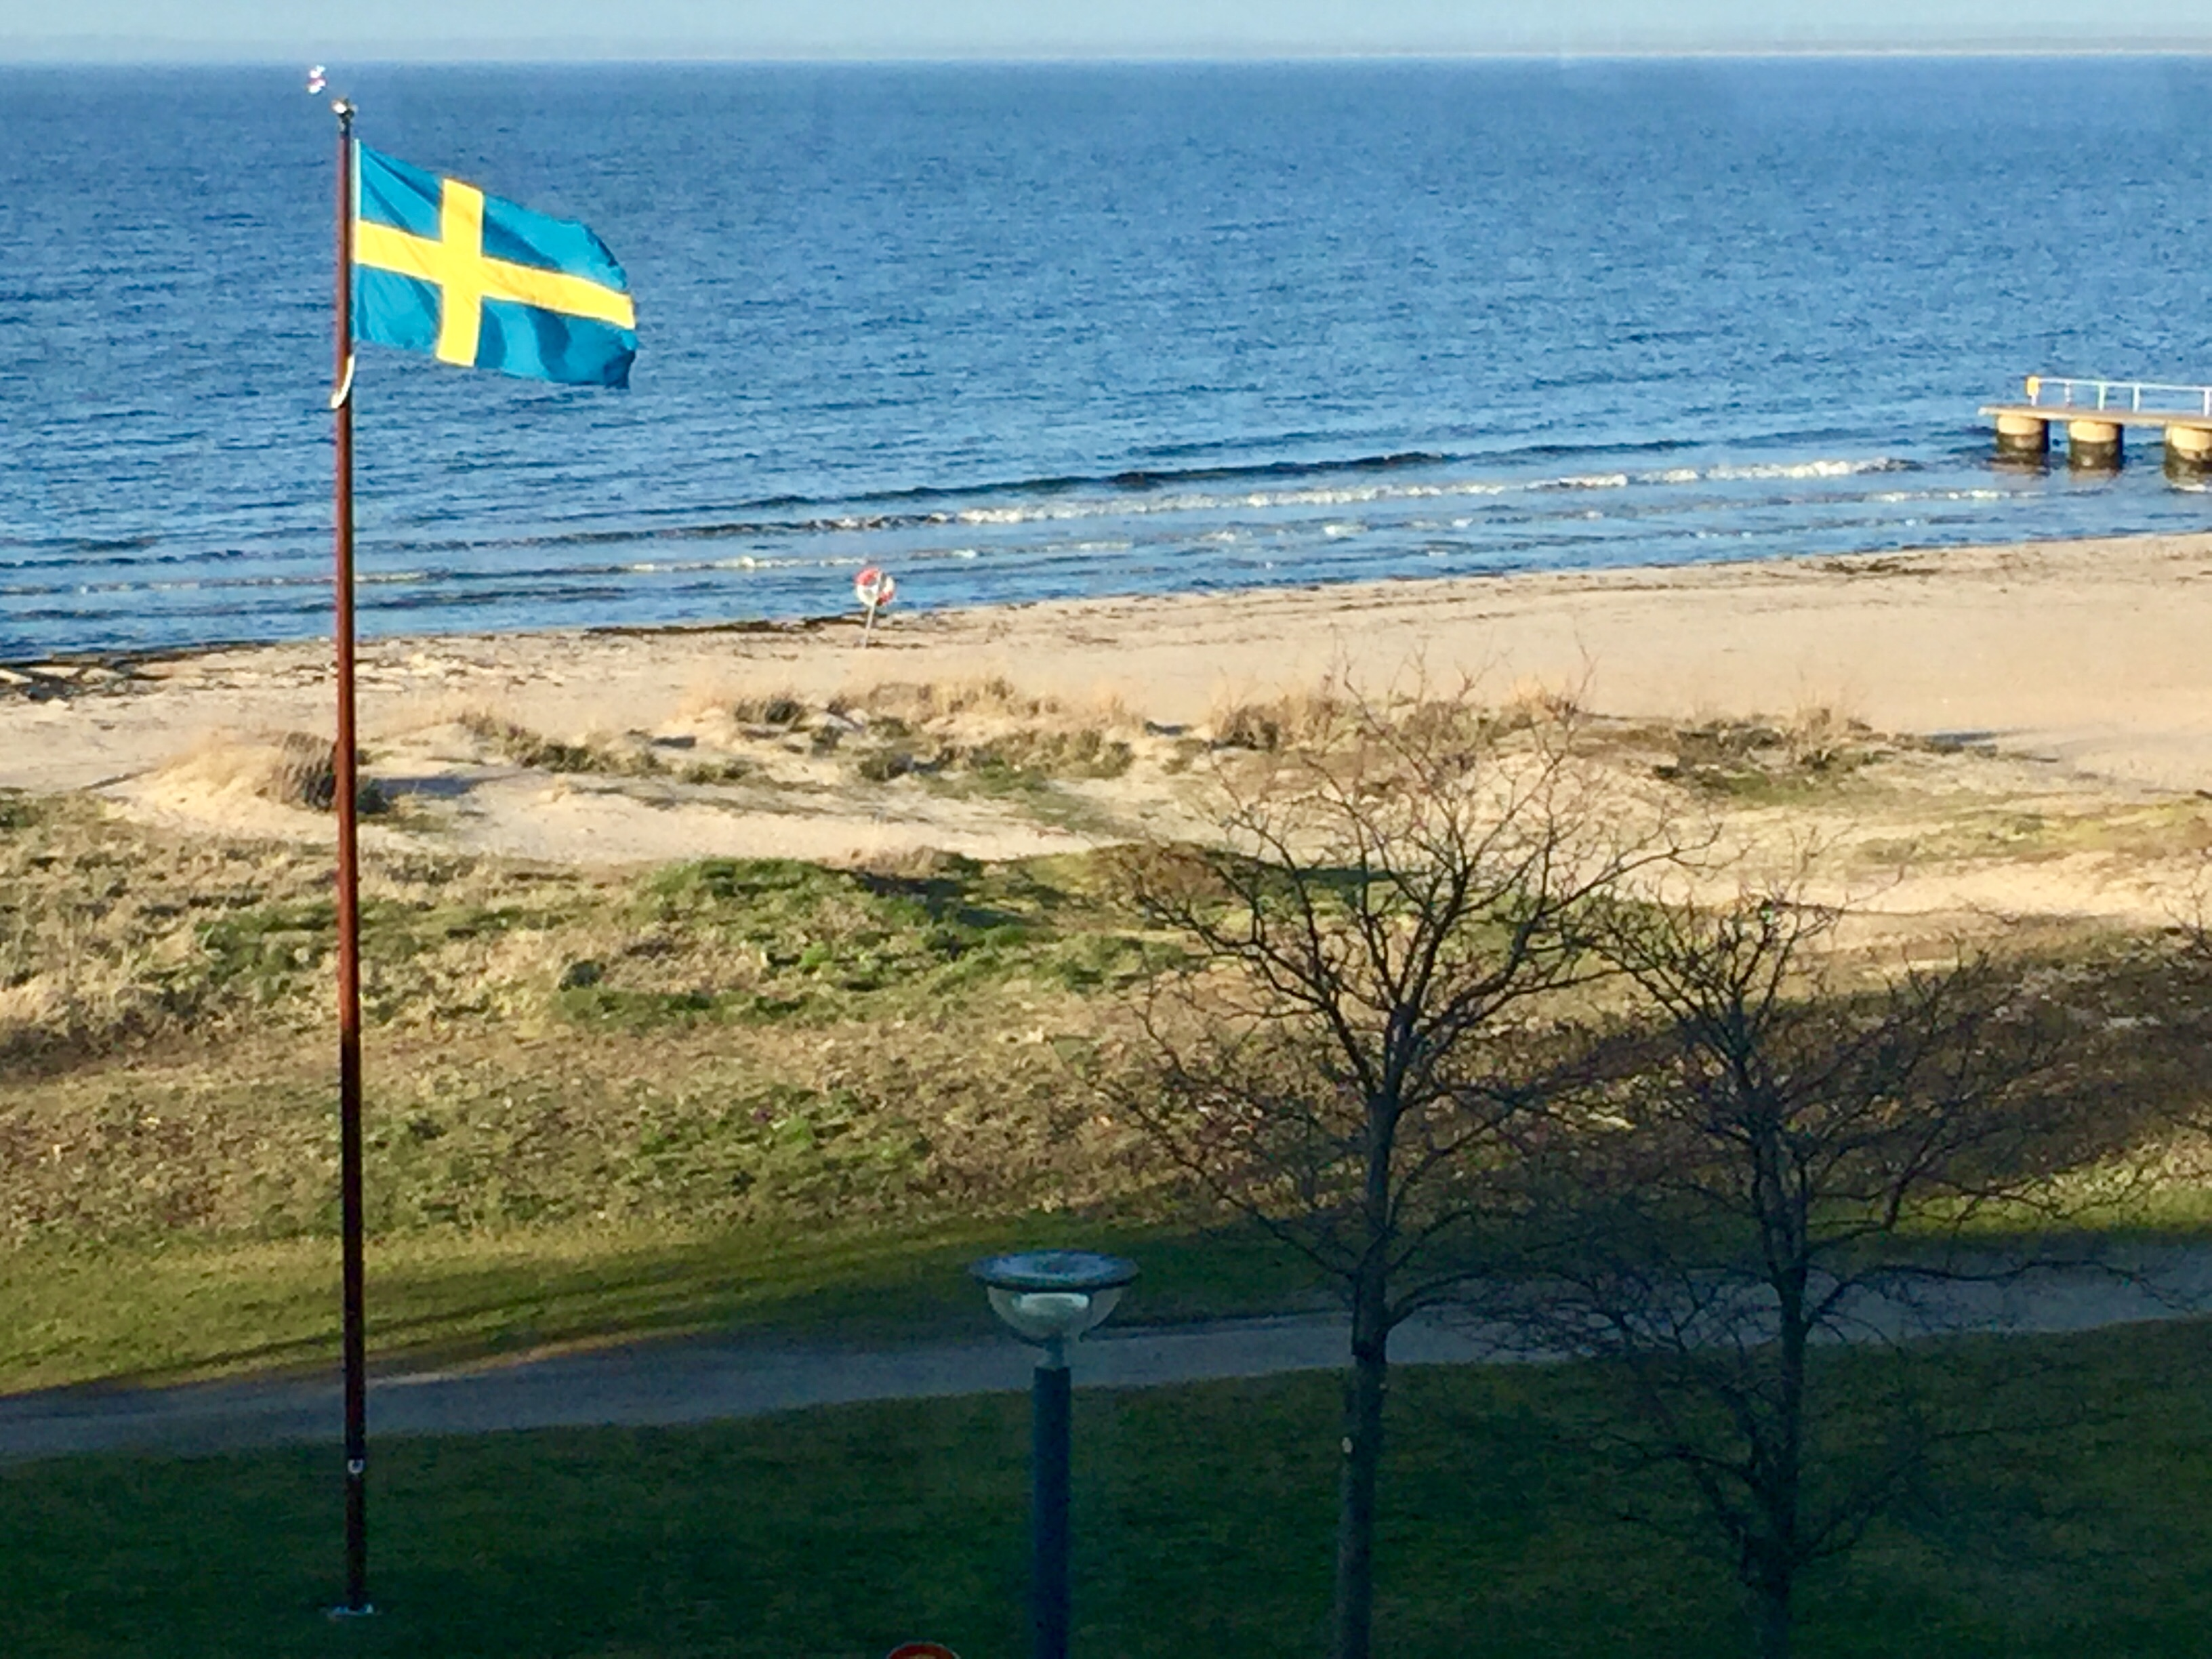 Swedish flag flying over coast of North Sea